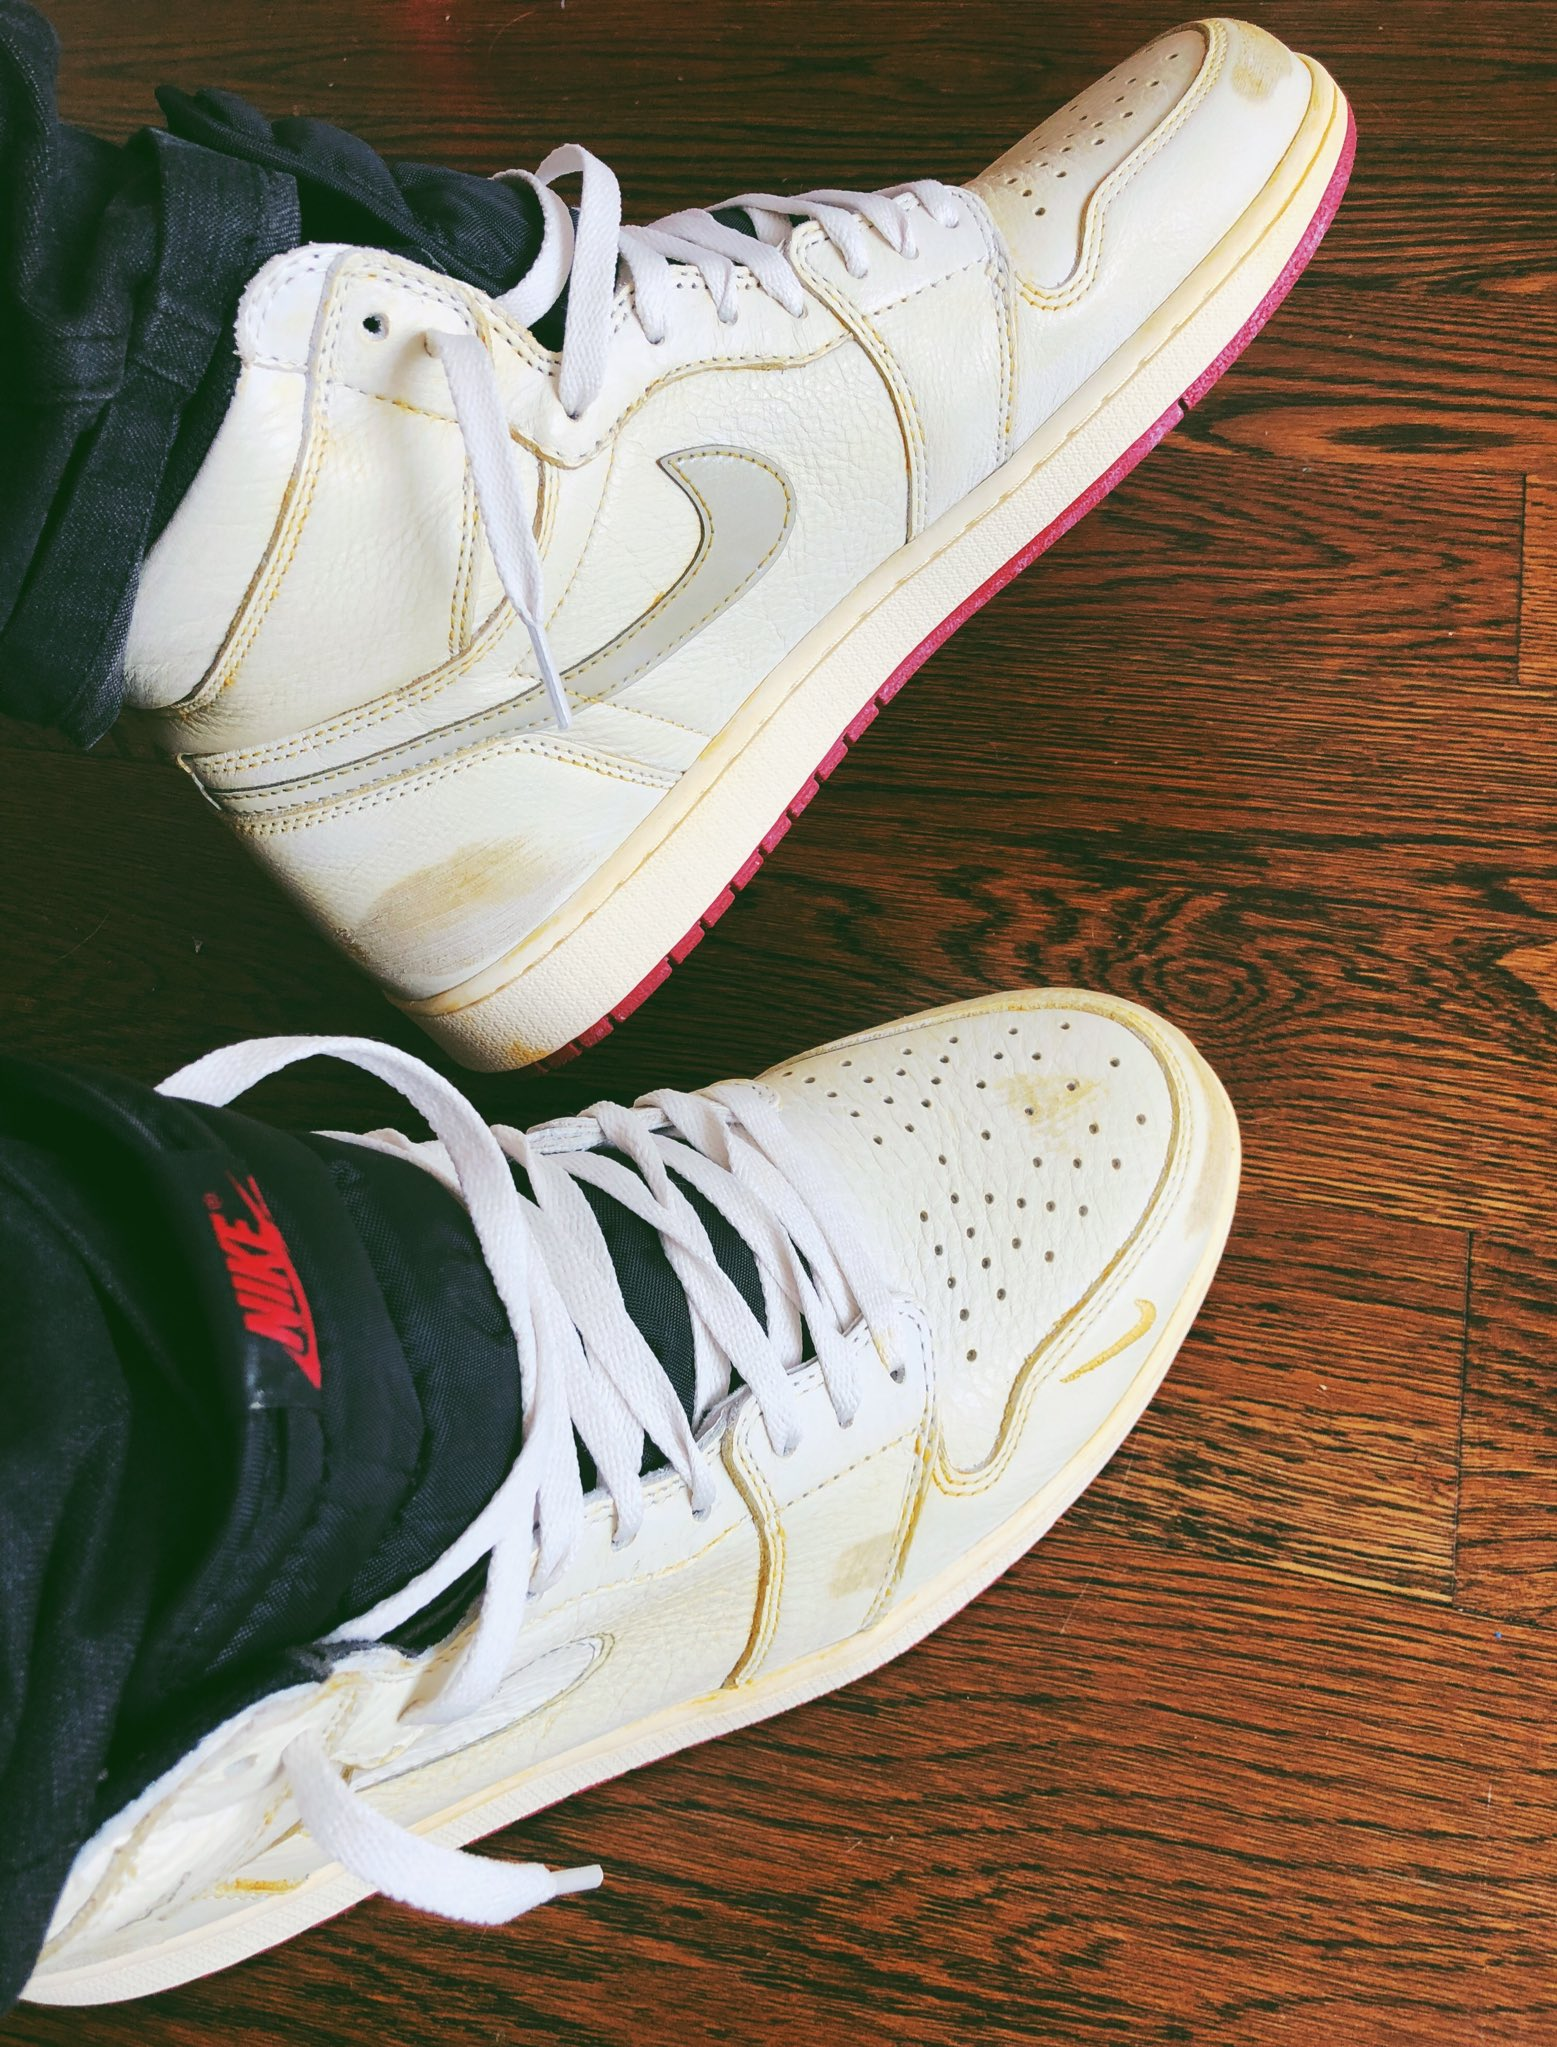 watch d8796 6eeda Nigel Sylvester x Air Jordan 1 High OG Thread | Page 2 ...